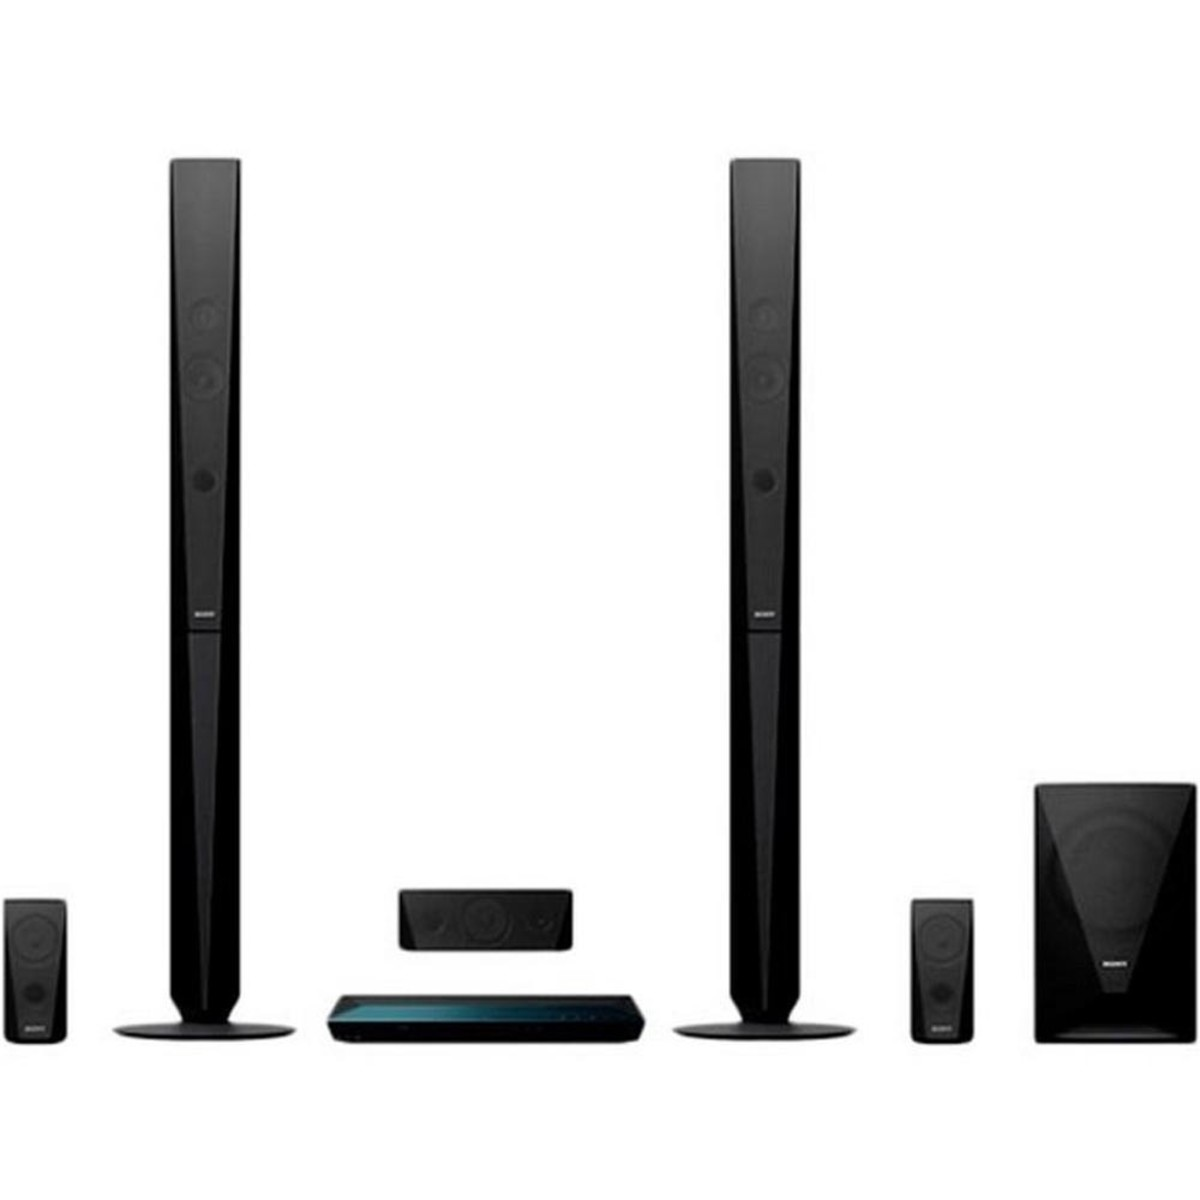 Black Point System In Qatar Buy Sony Blu Ray Home Theatre System Bdve4100 Online